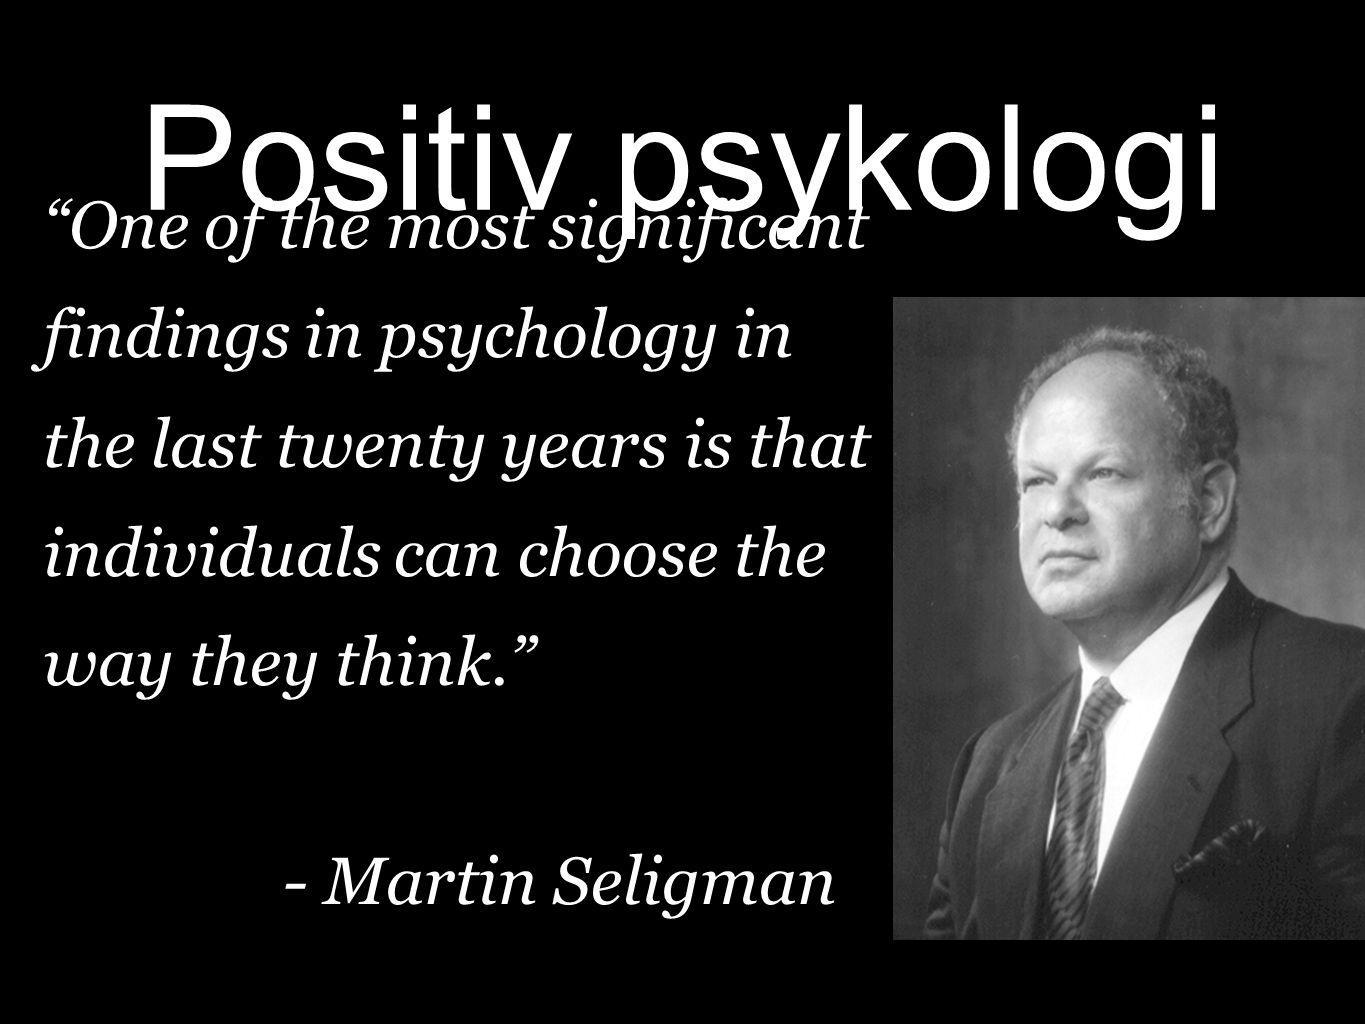 Positiv psykologi One of the most significant findings in psychology in the last twenty years is that individuals can choose the way they think.